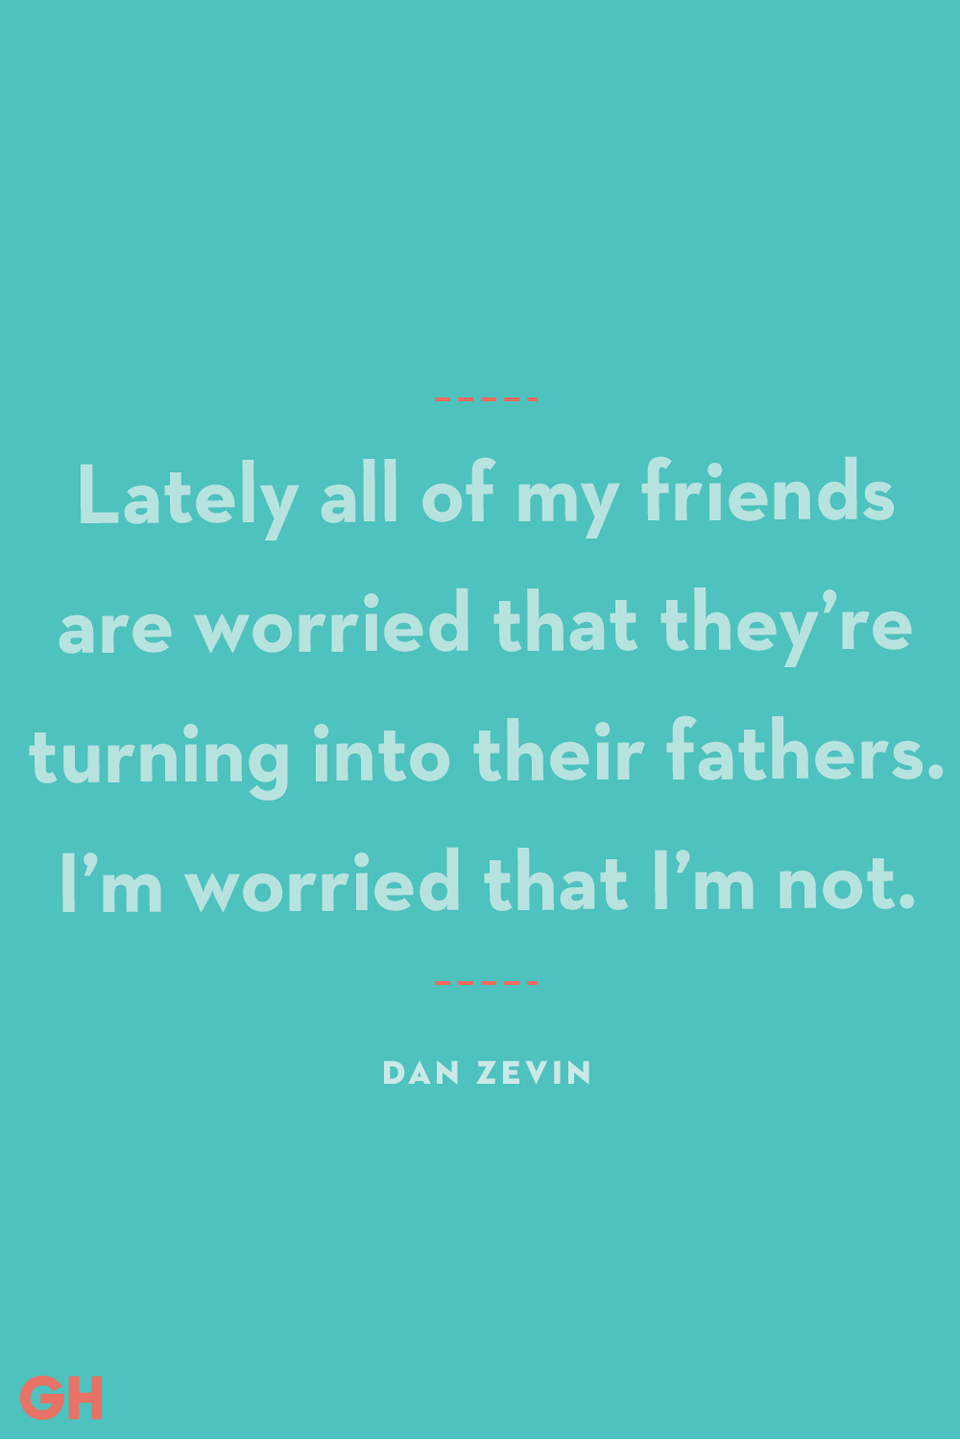 <p>Lately all of my friends are worried that they're turning into their fathers. I'm worried that I'm not.</p>